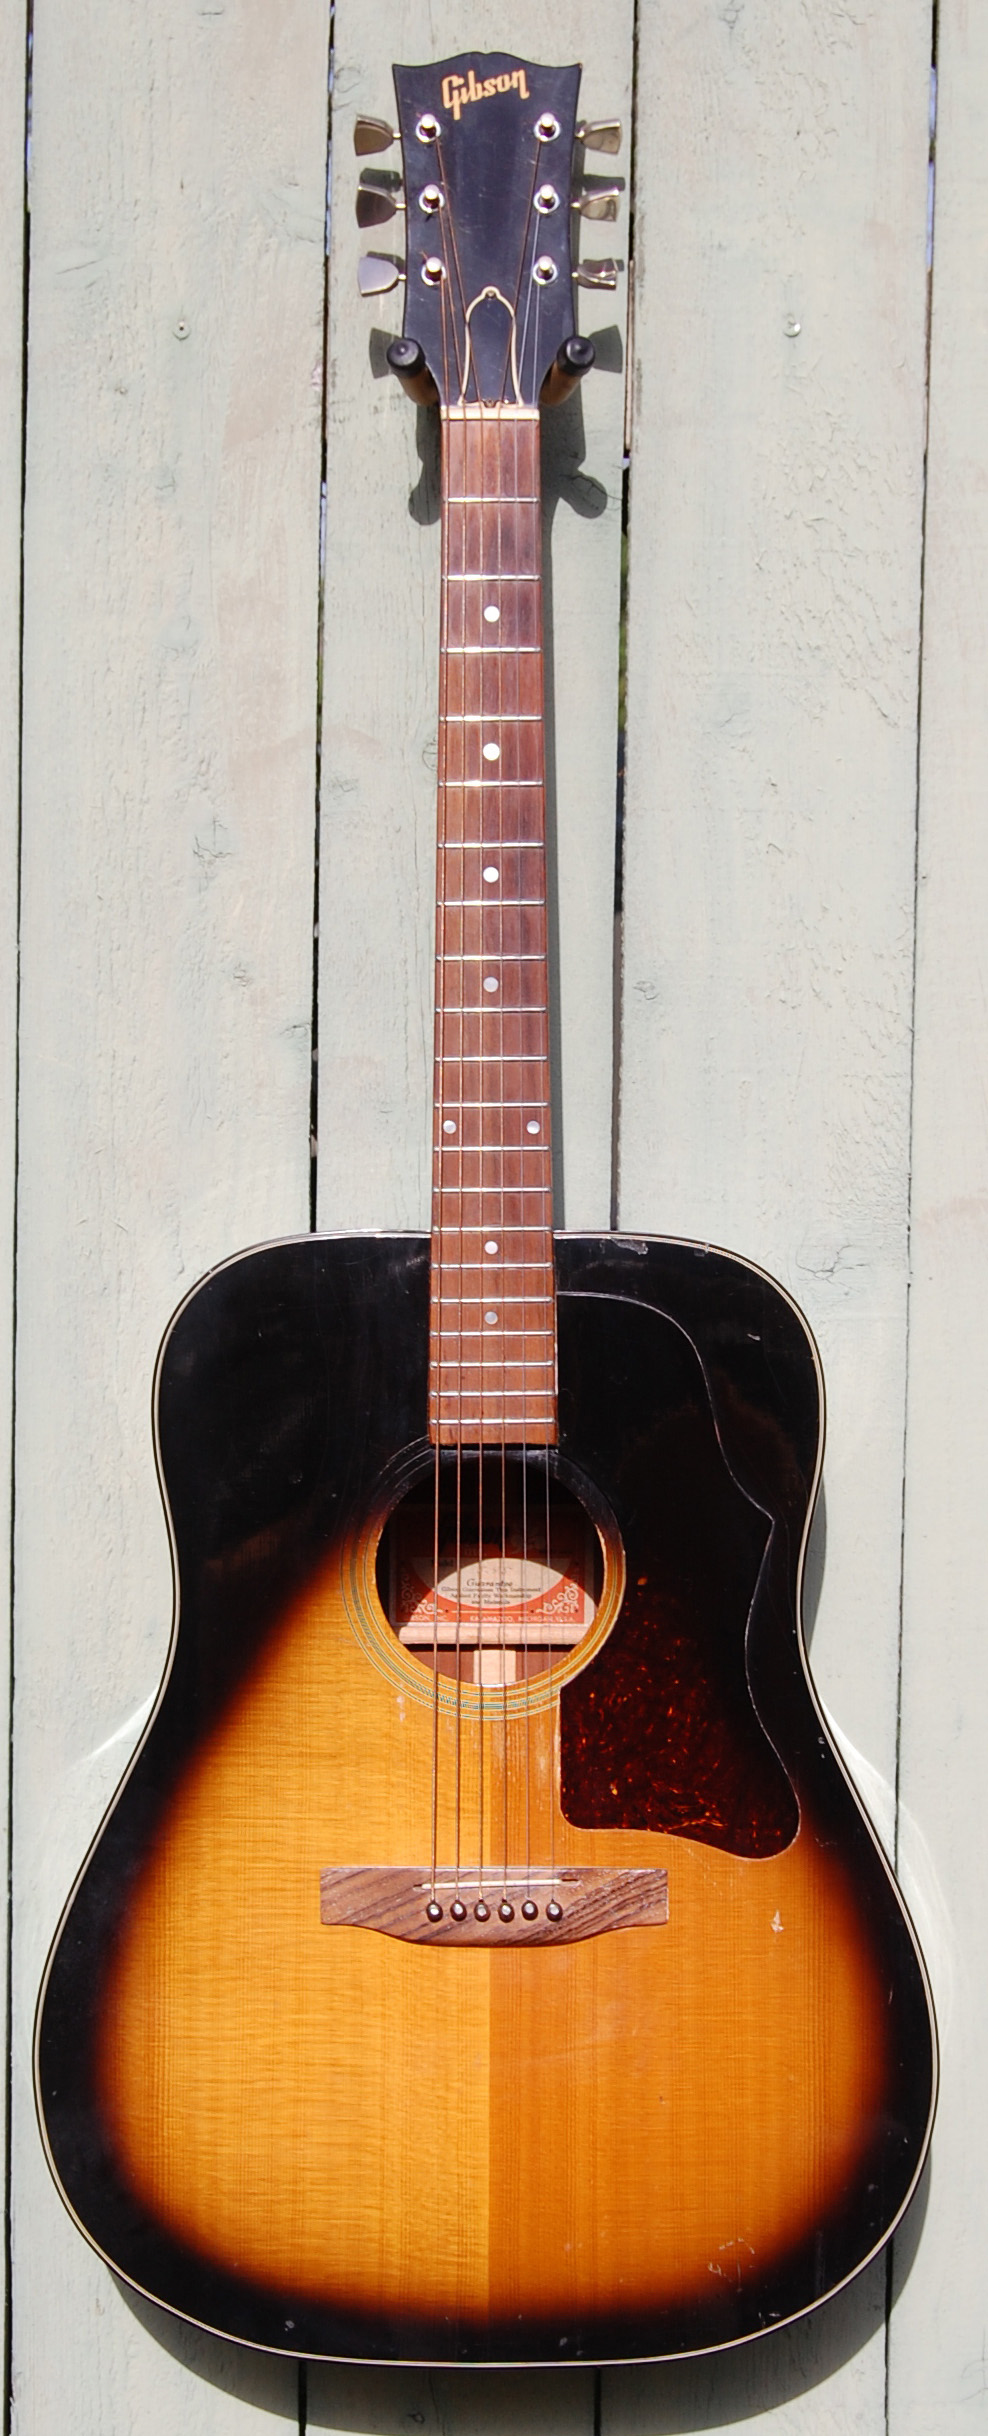 1974 Gibson J45 tobacco burst.  Great player.  Reportedly played by Bob Dylan.